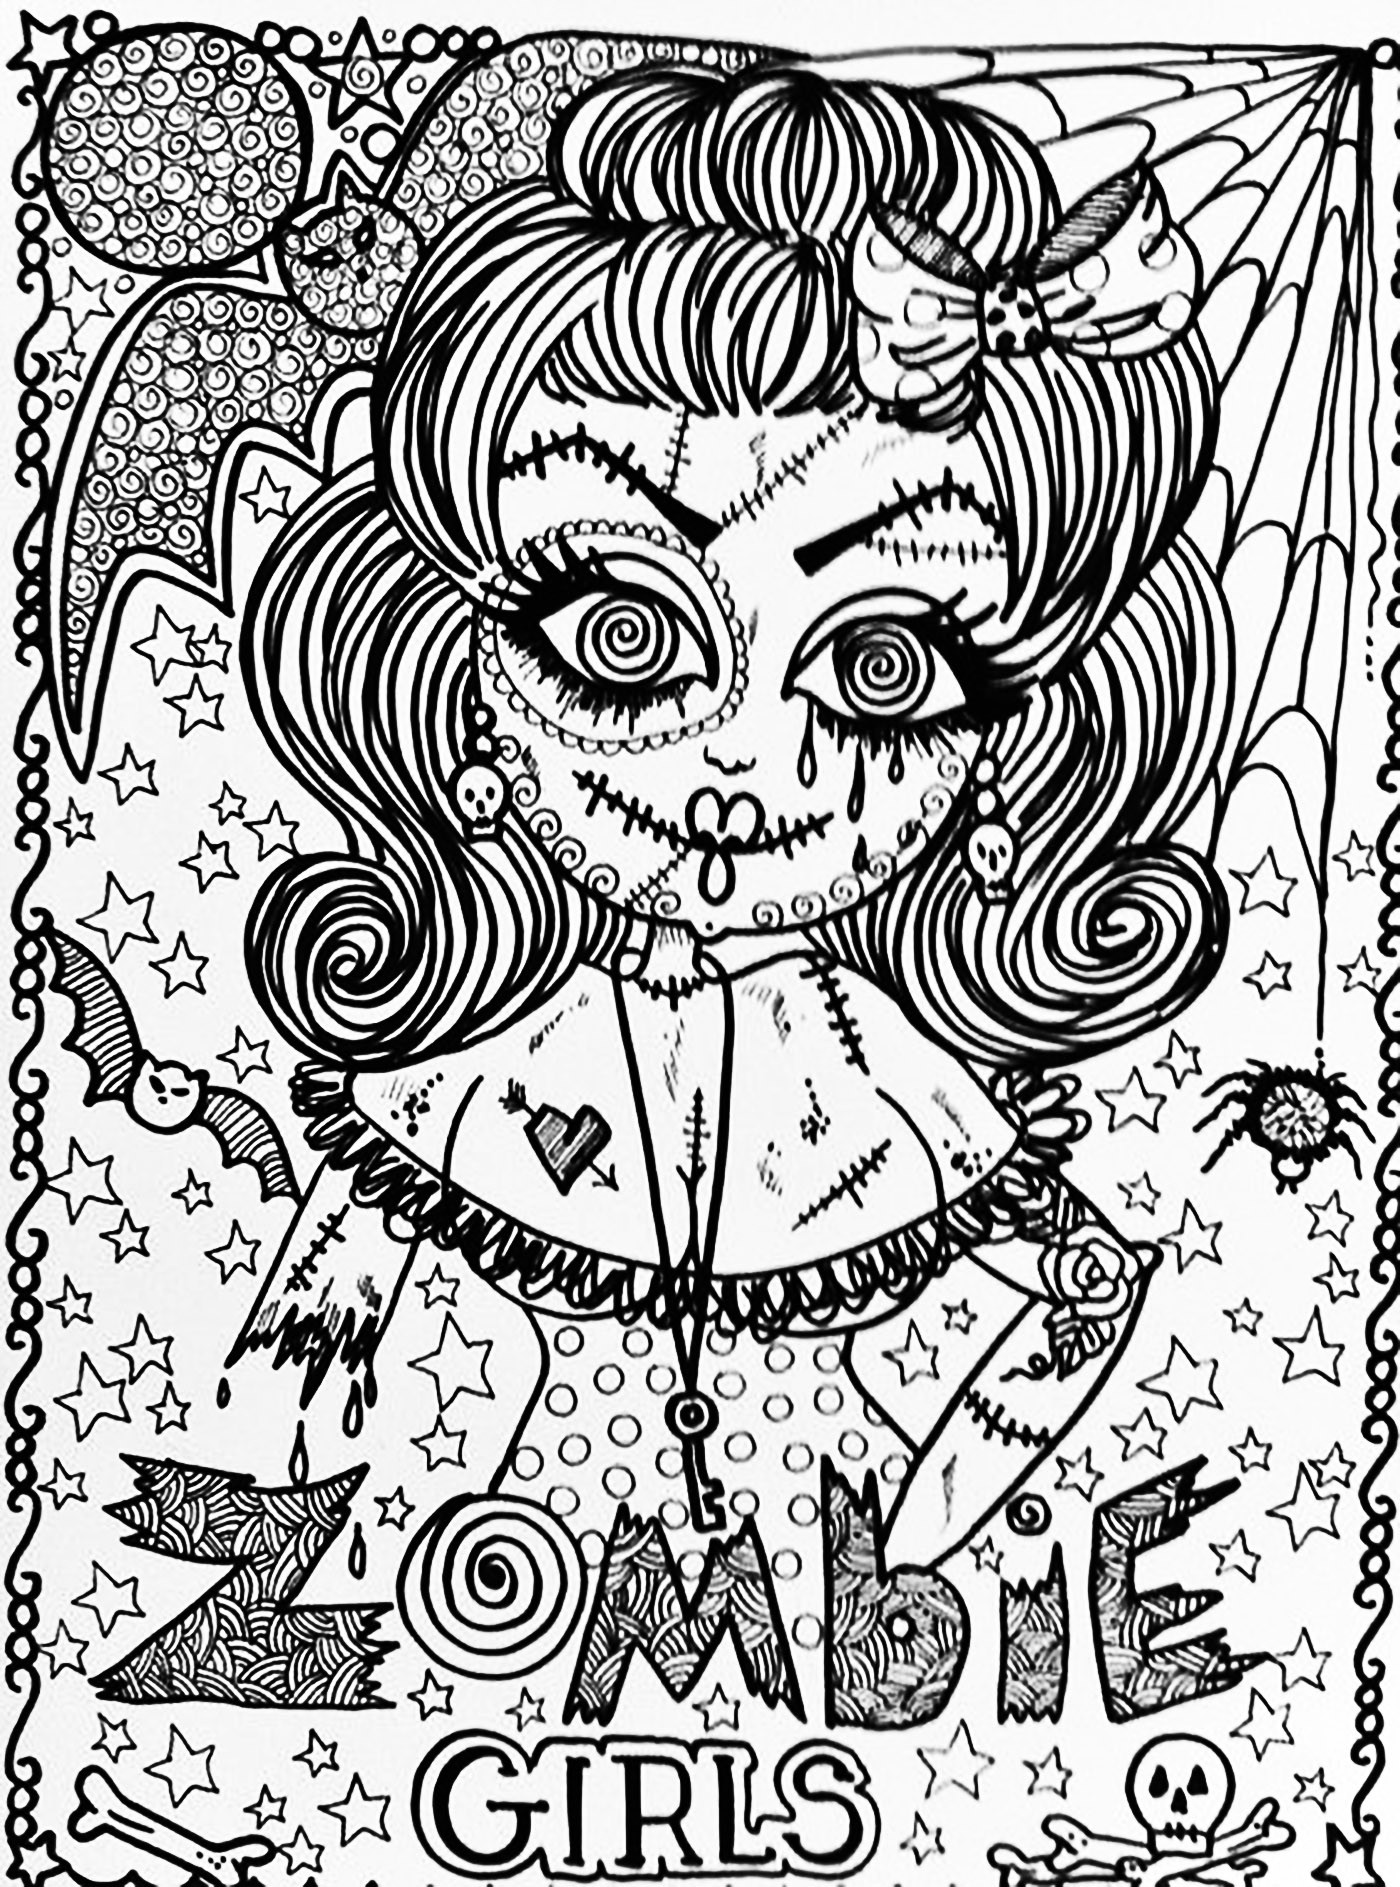 Scary Halloween Coloring Pages For Adults  Halloween zombie girl Halloween Adult Coloring Pages